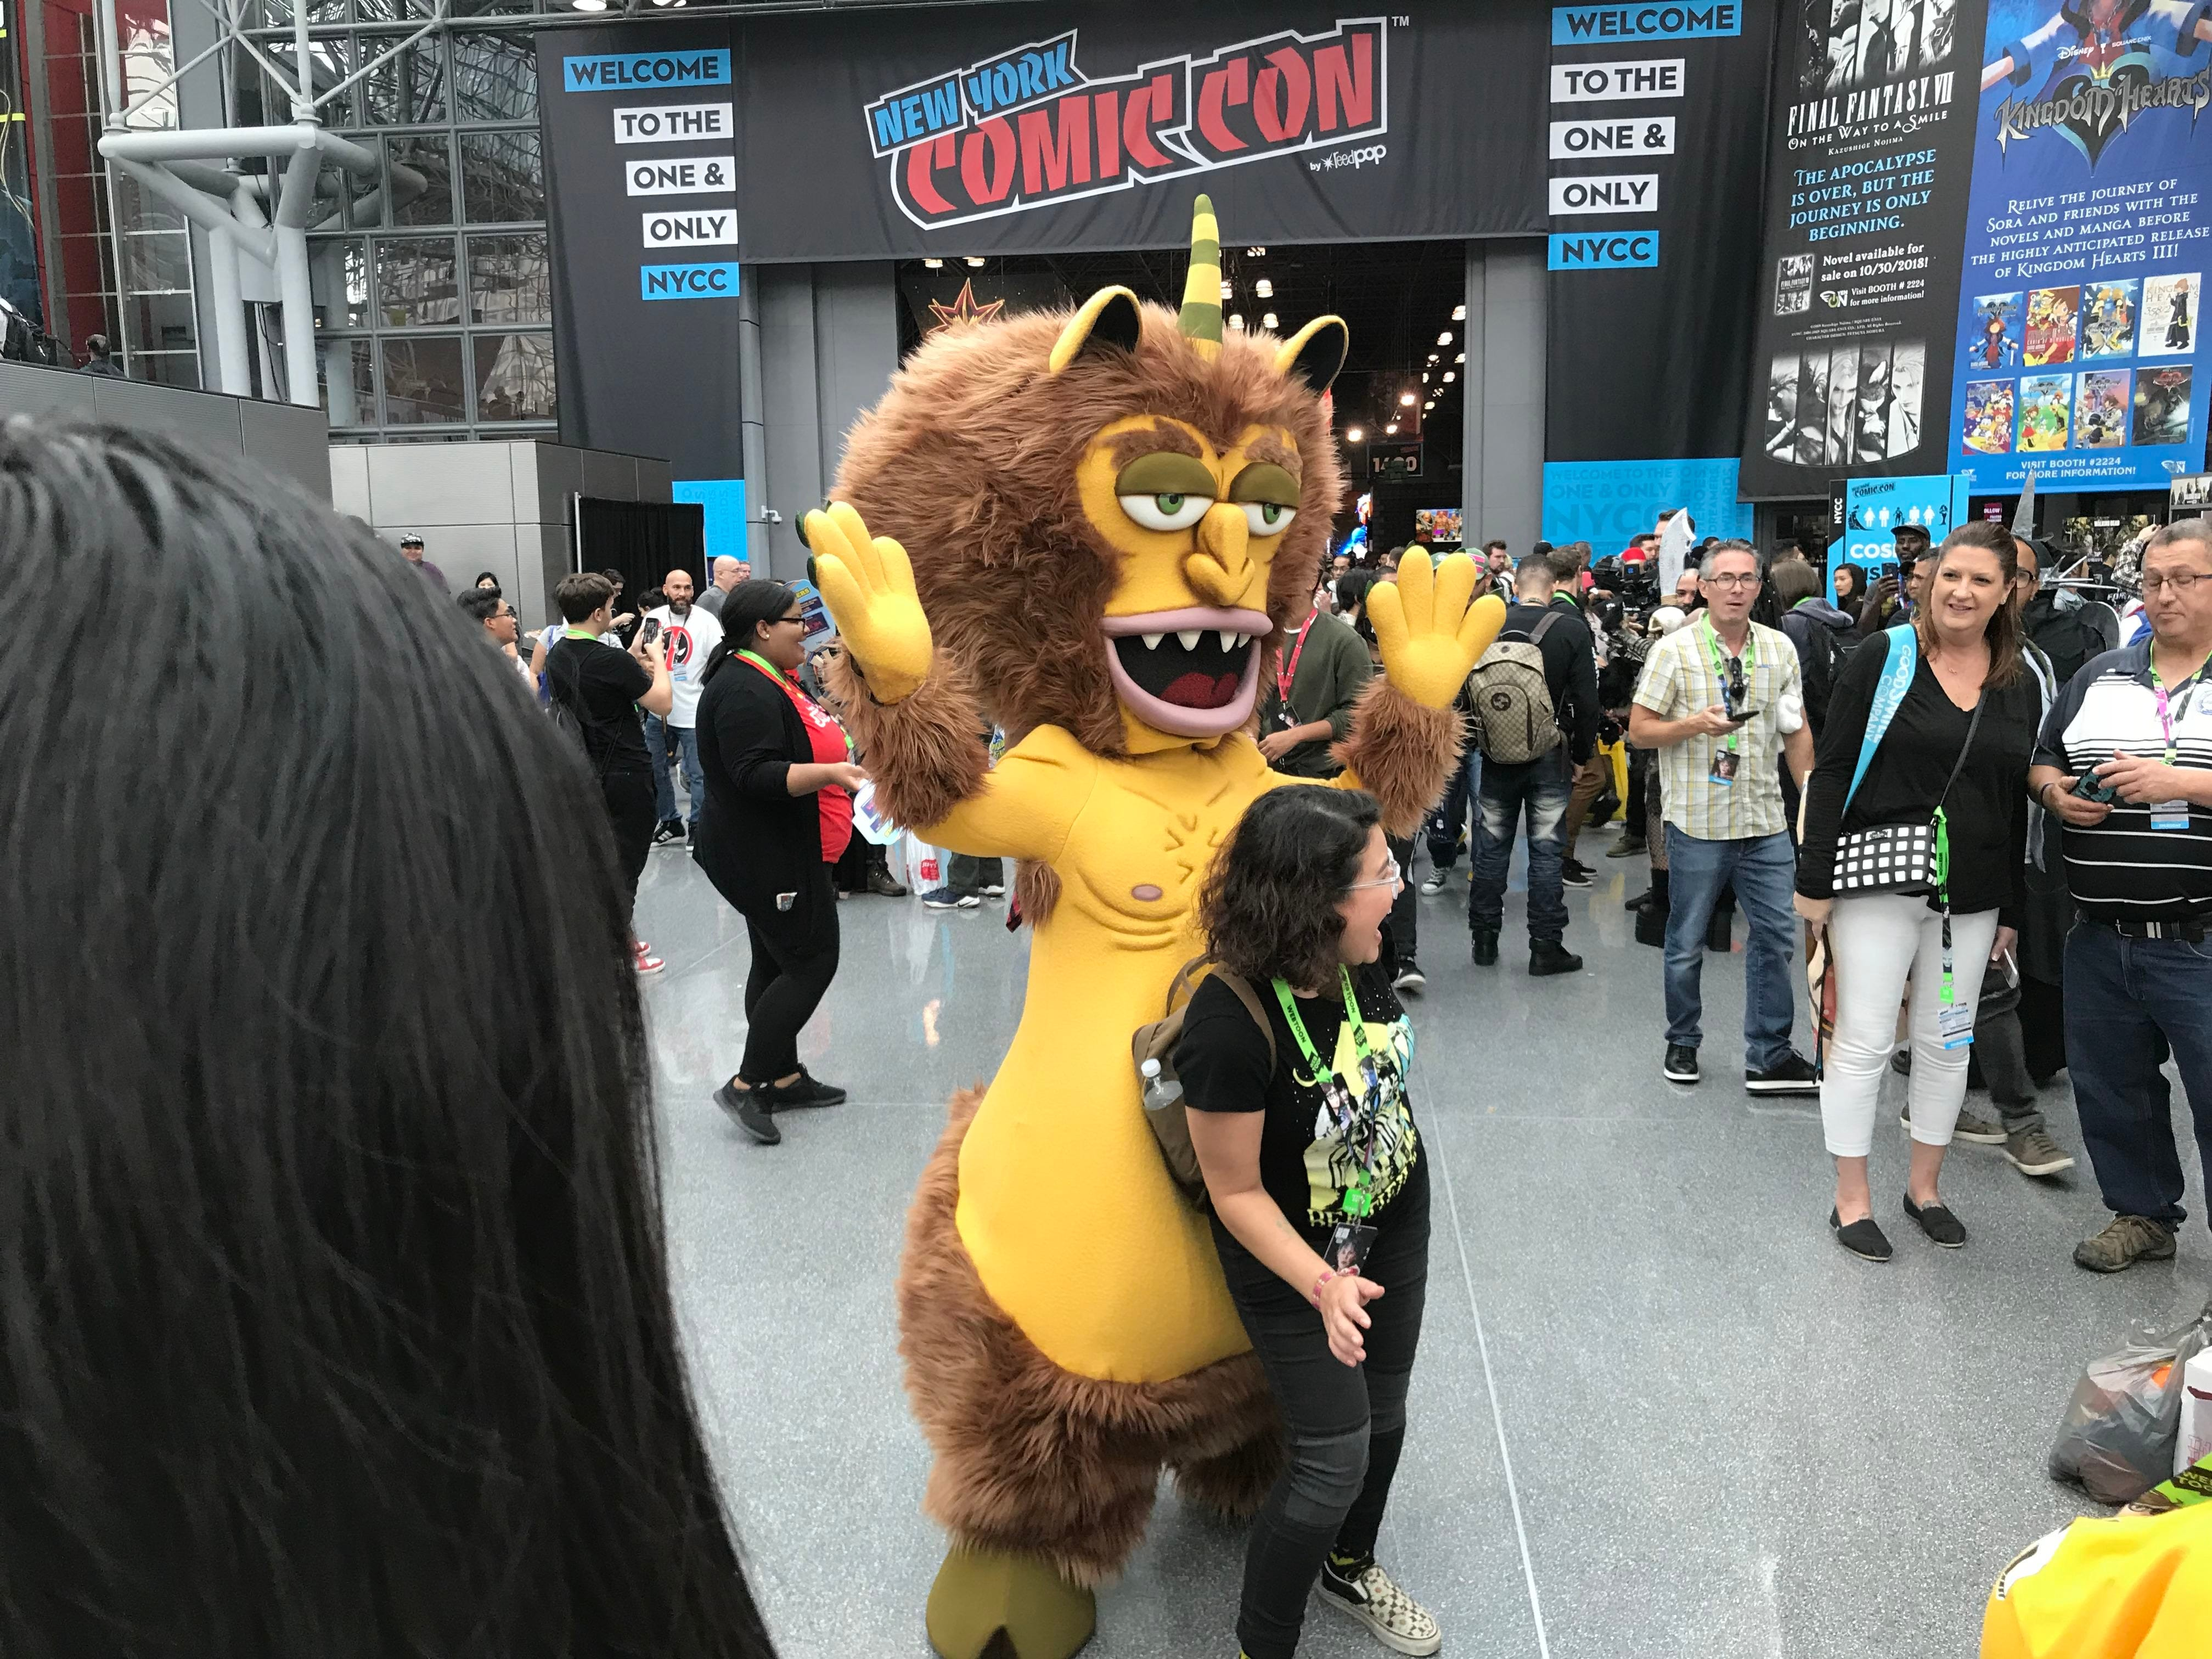 Scenes from the first day of New York Comic Con at the Javits Convention Center in New York City on Thursday, Oct. 4, 2018